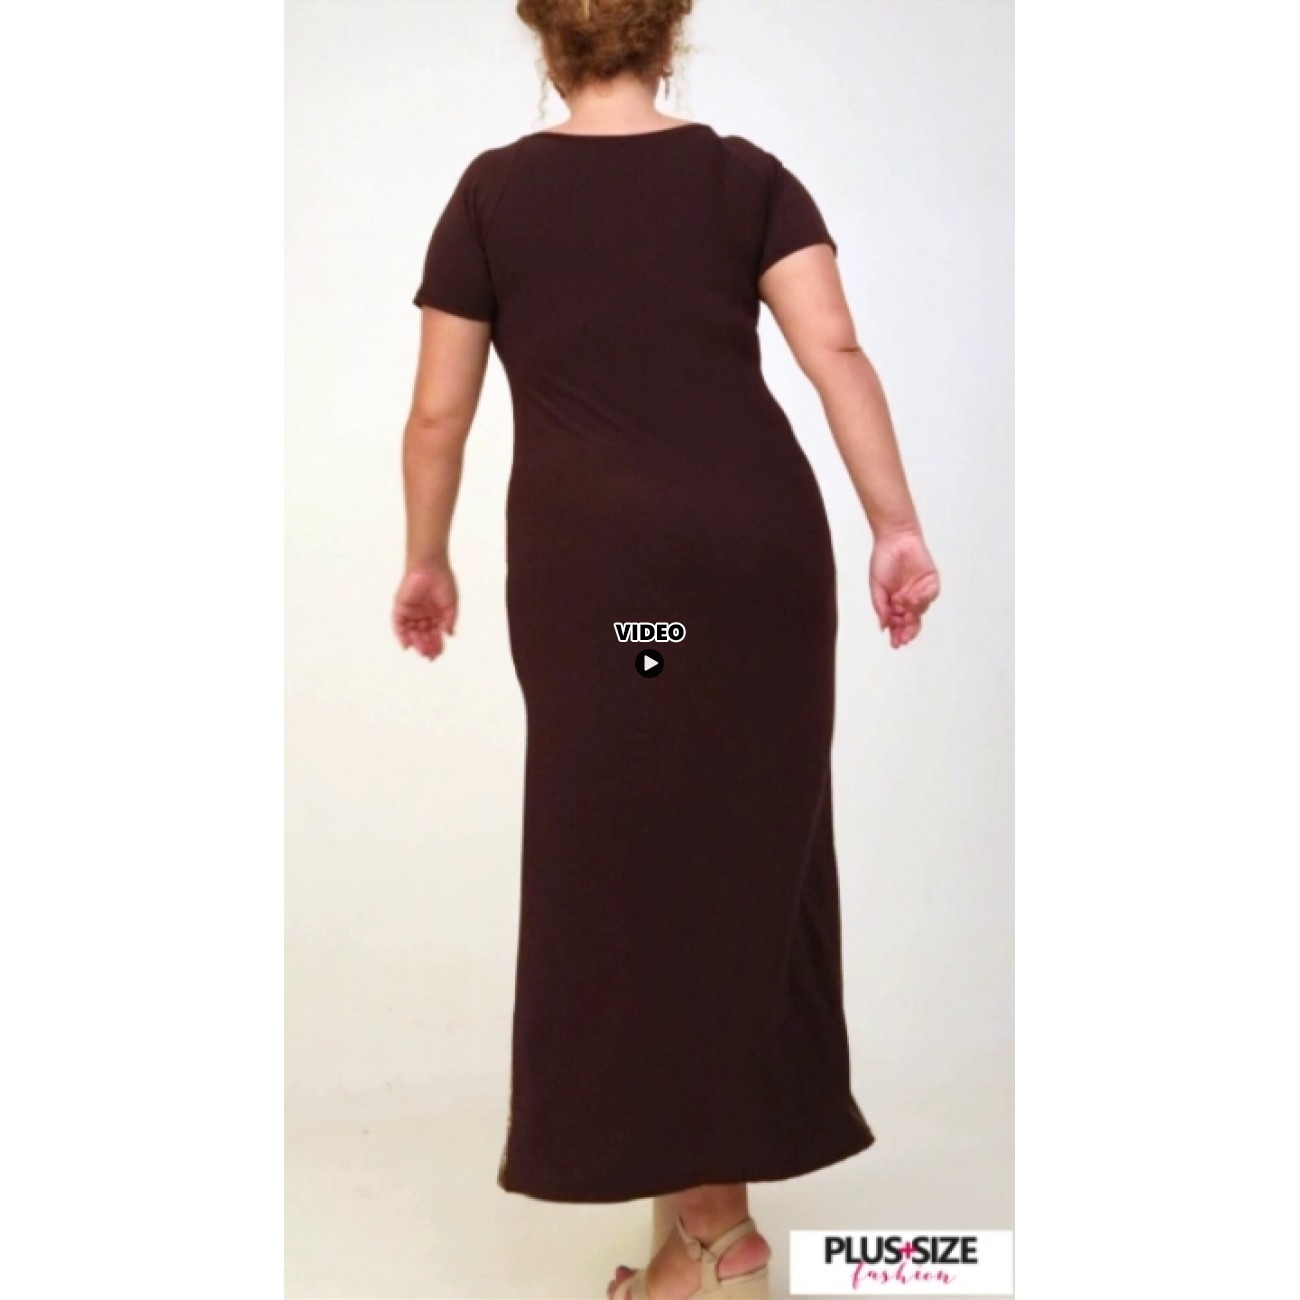 A21-7823FK Long Jersey Dress with pattern - Brown